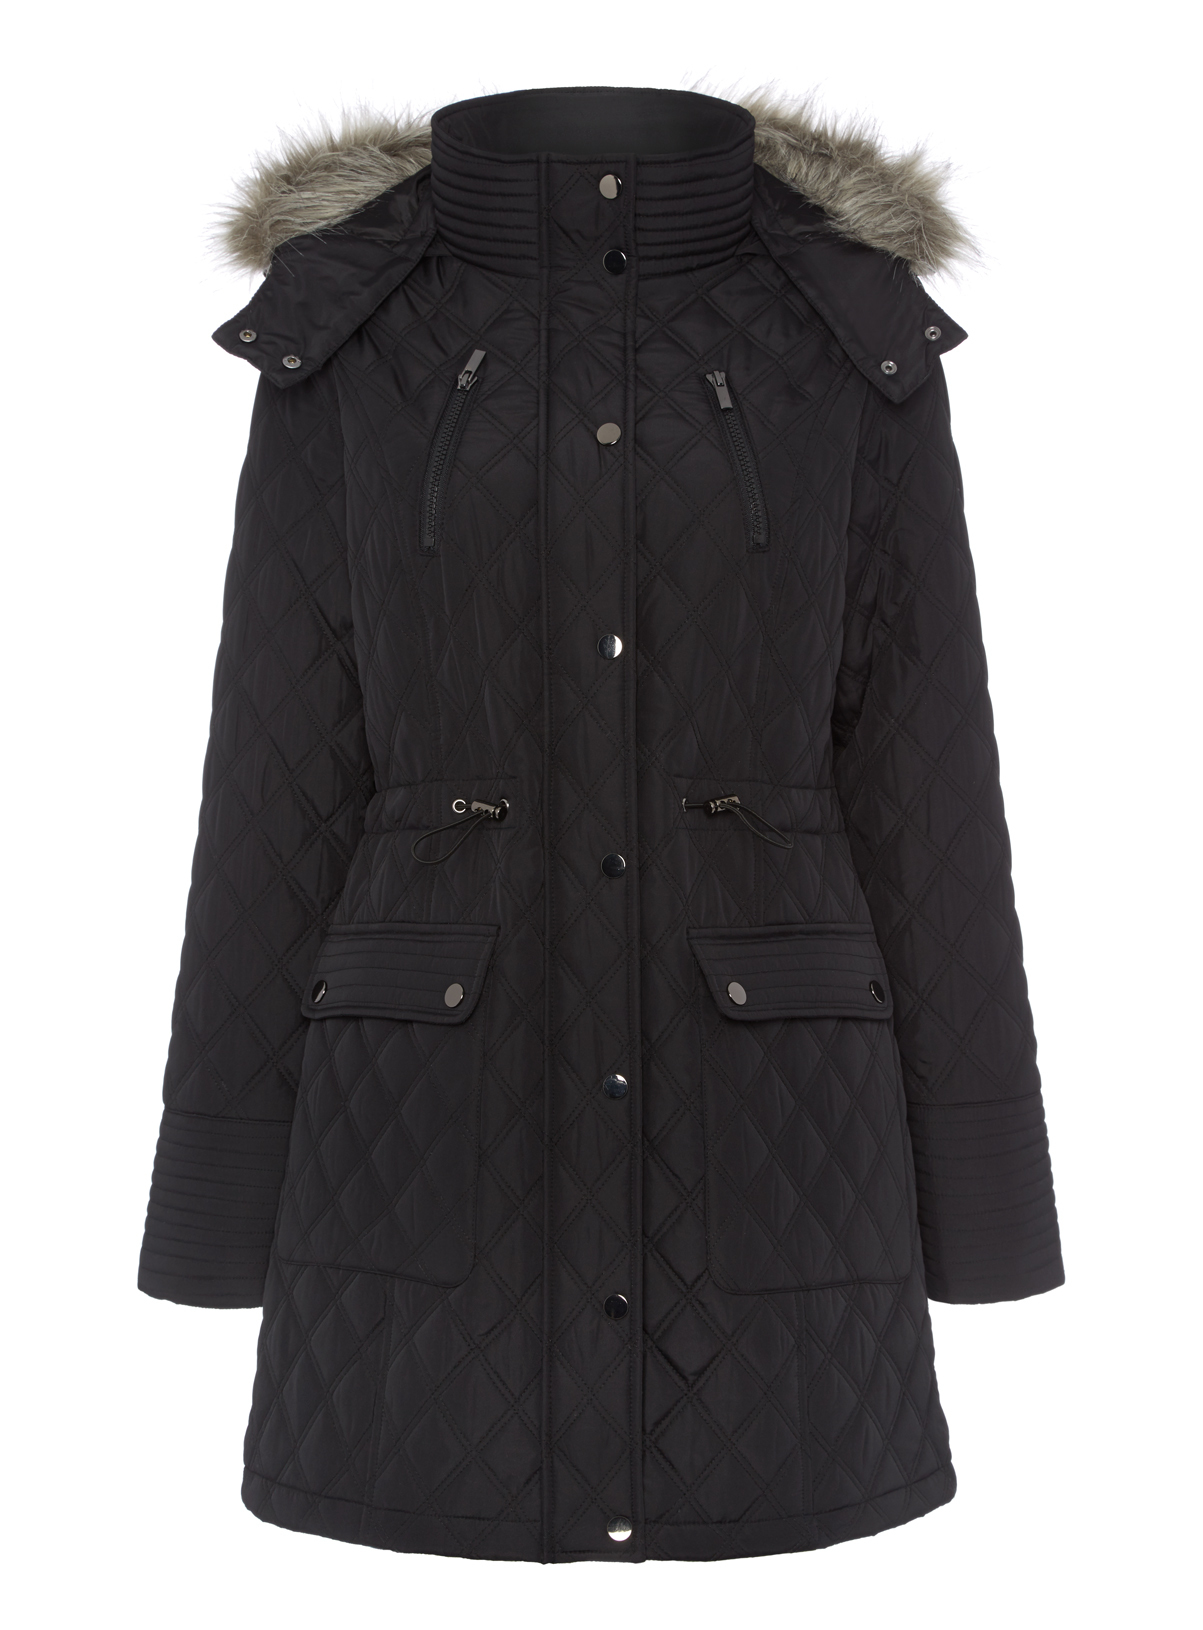 womens black parka jacket jackets review. Black Bedroom Furniture Sets. Home Design Ideas